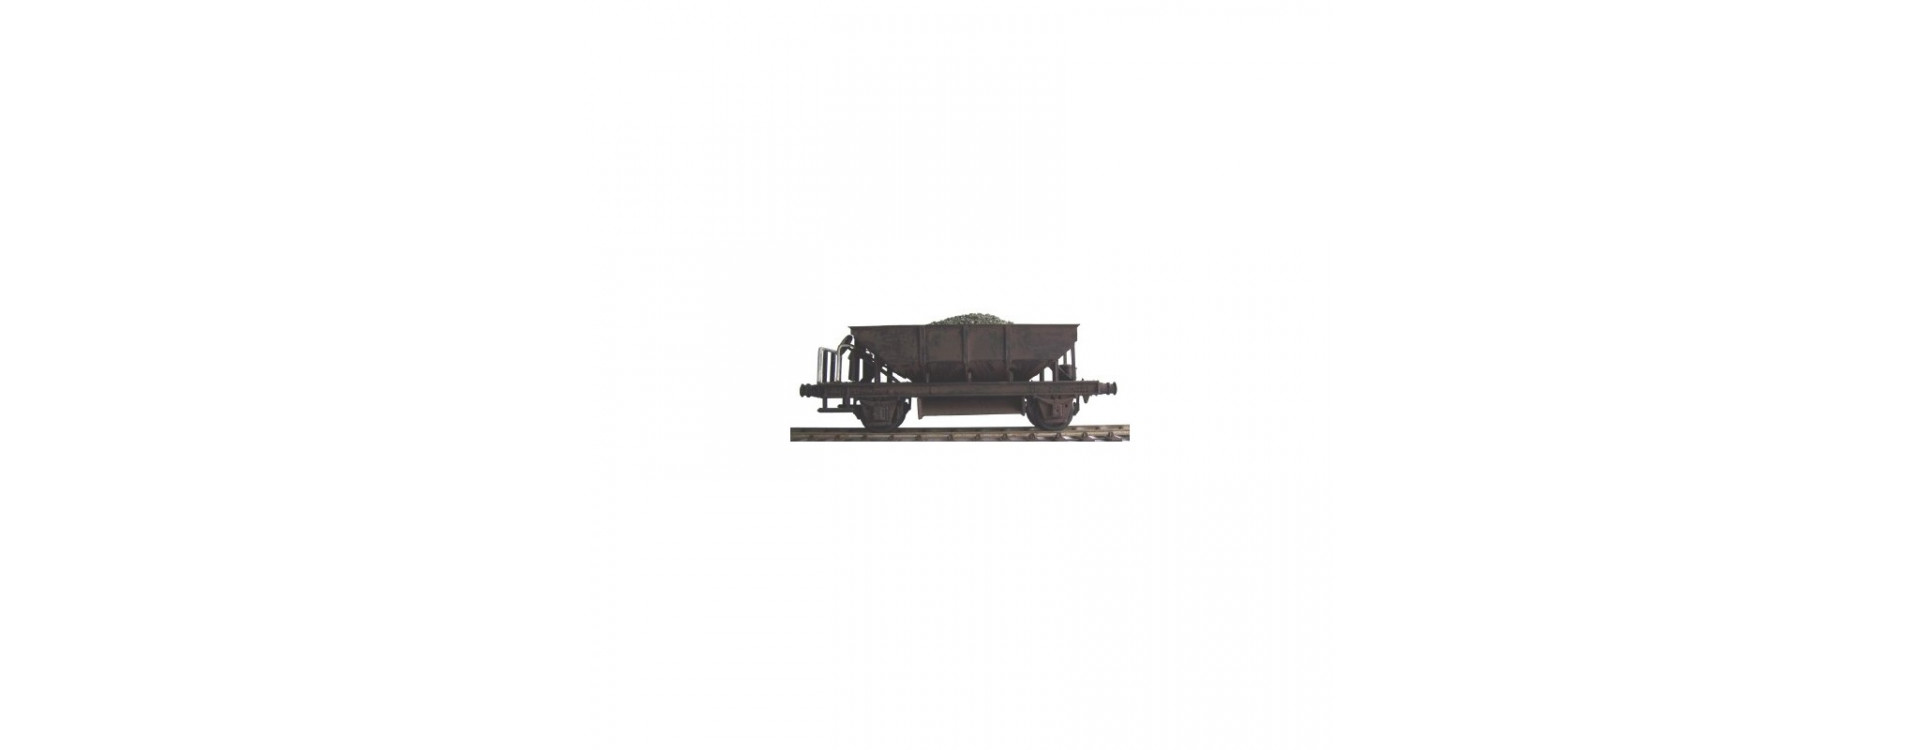 How much weight should I add to my rolling stock?